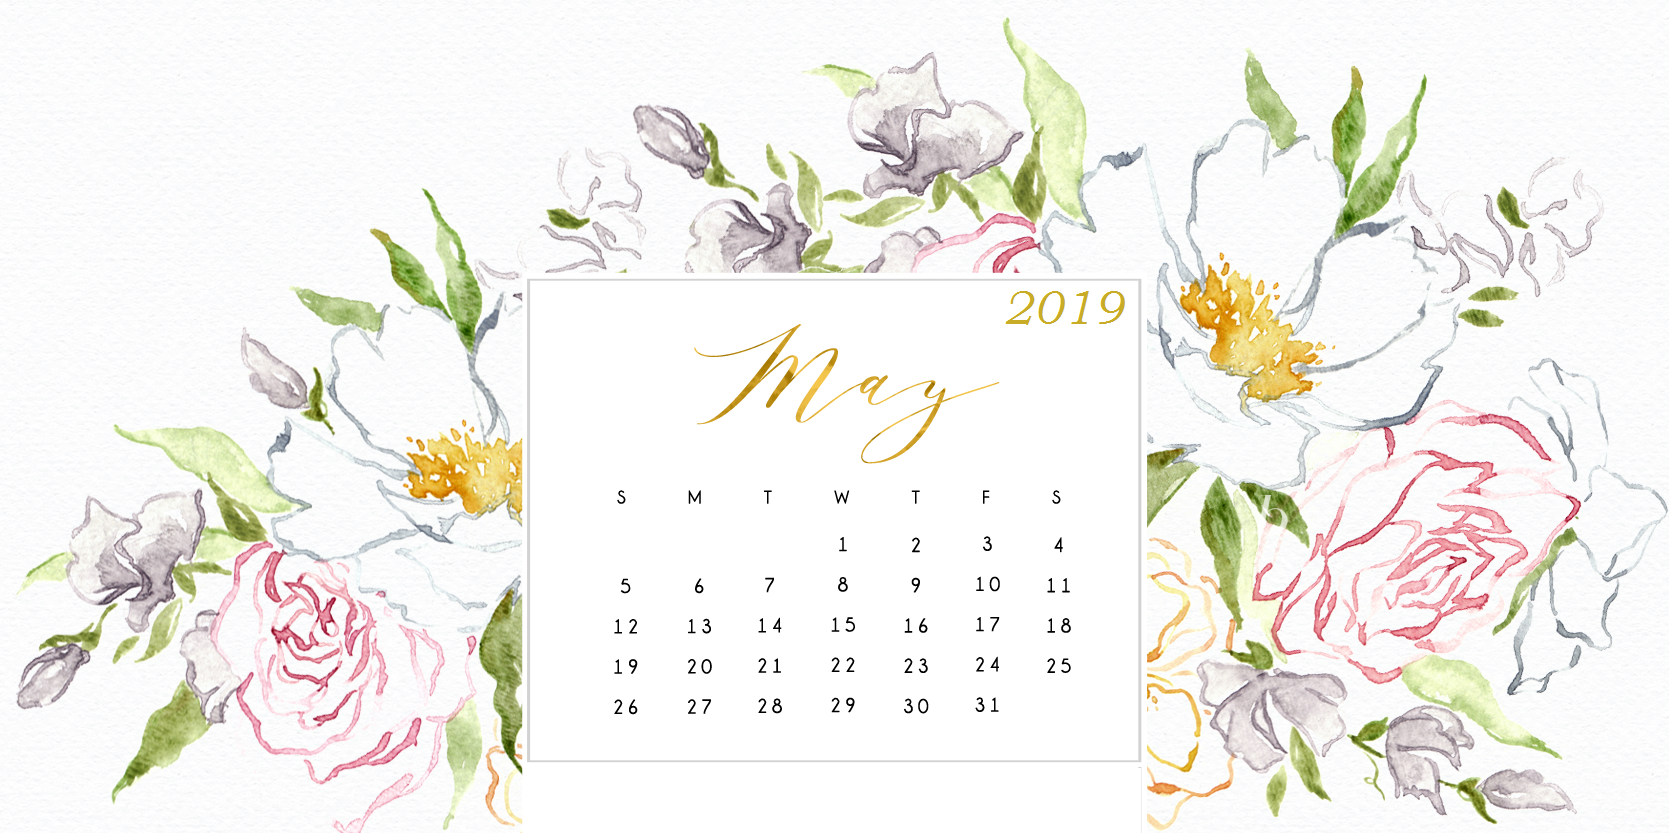 May 2019 Calendar Wallpaper For Desktop